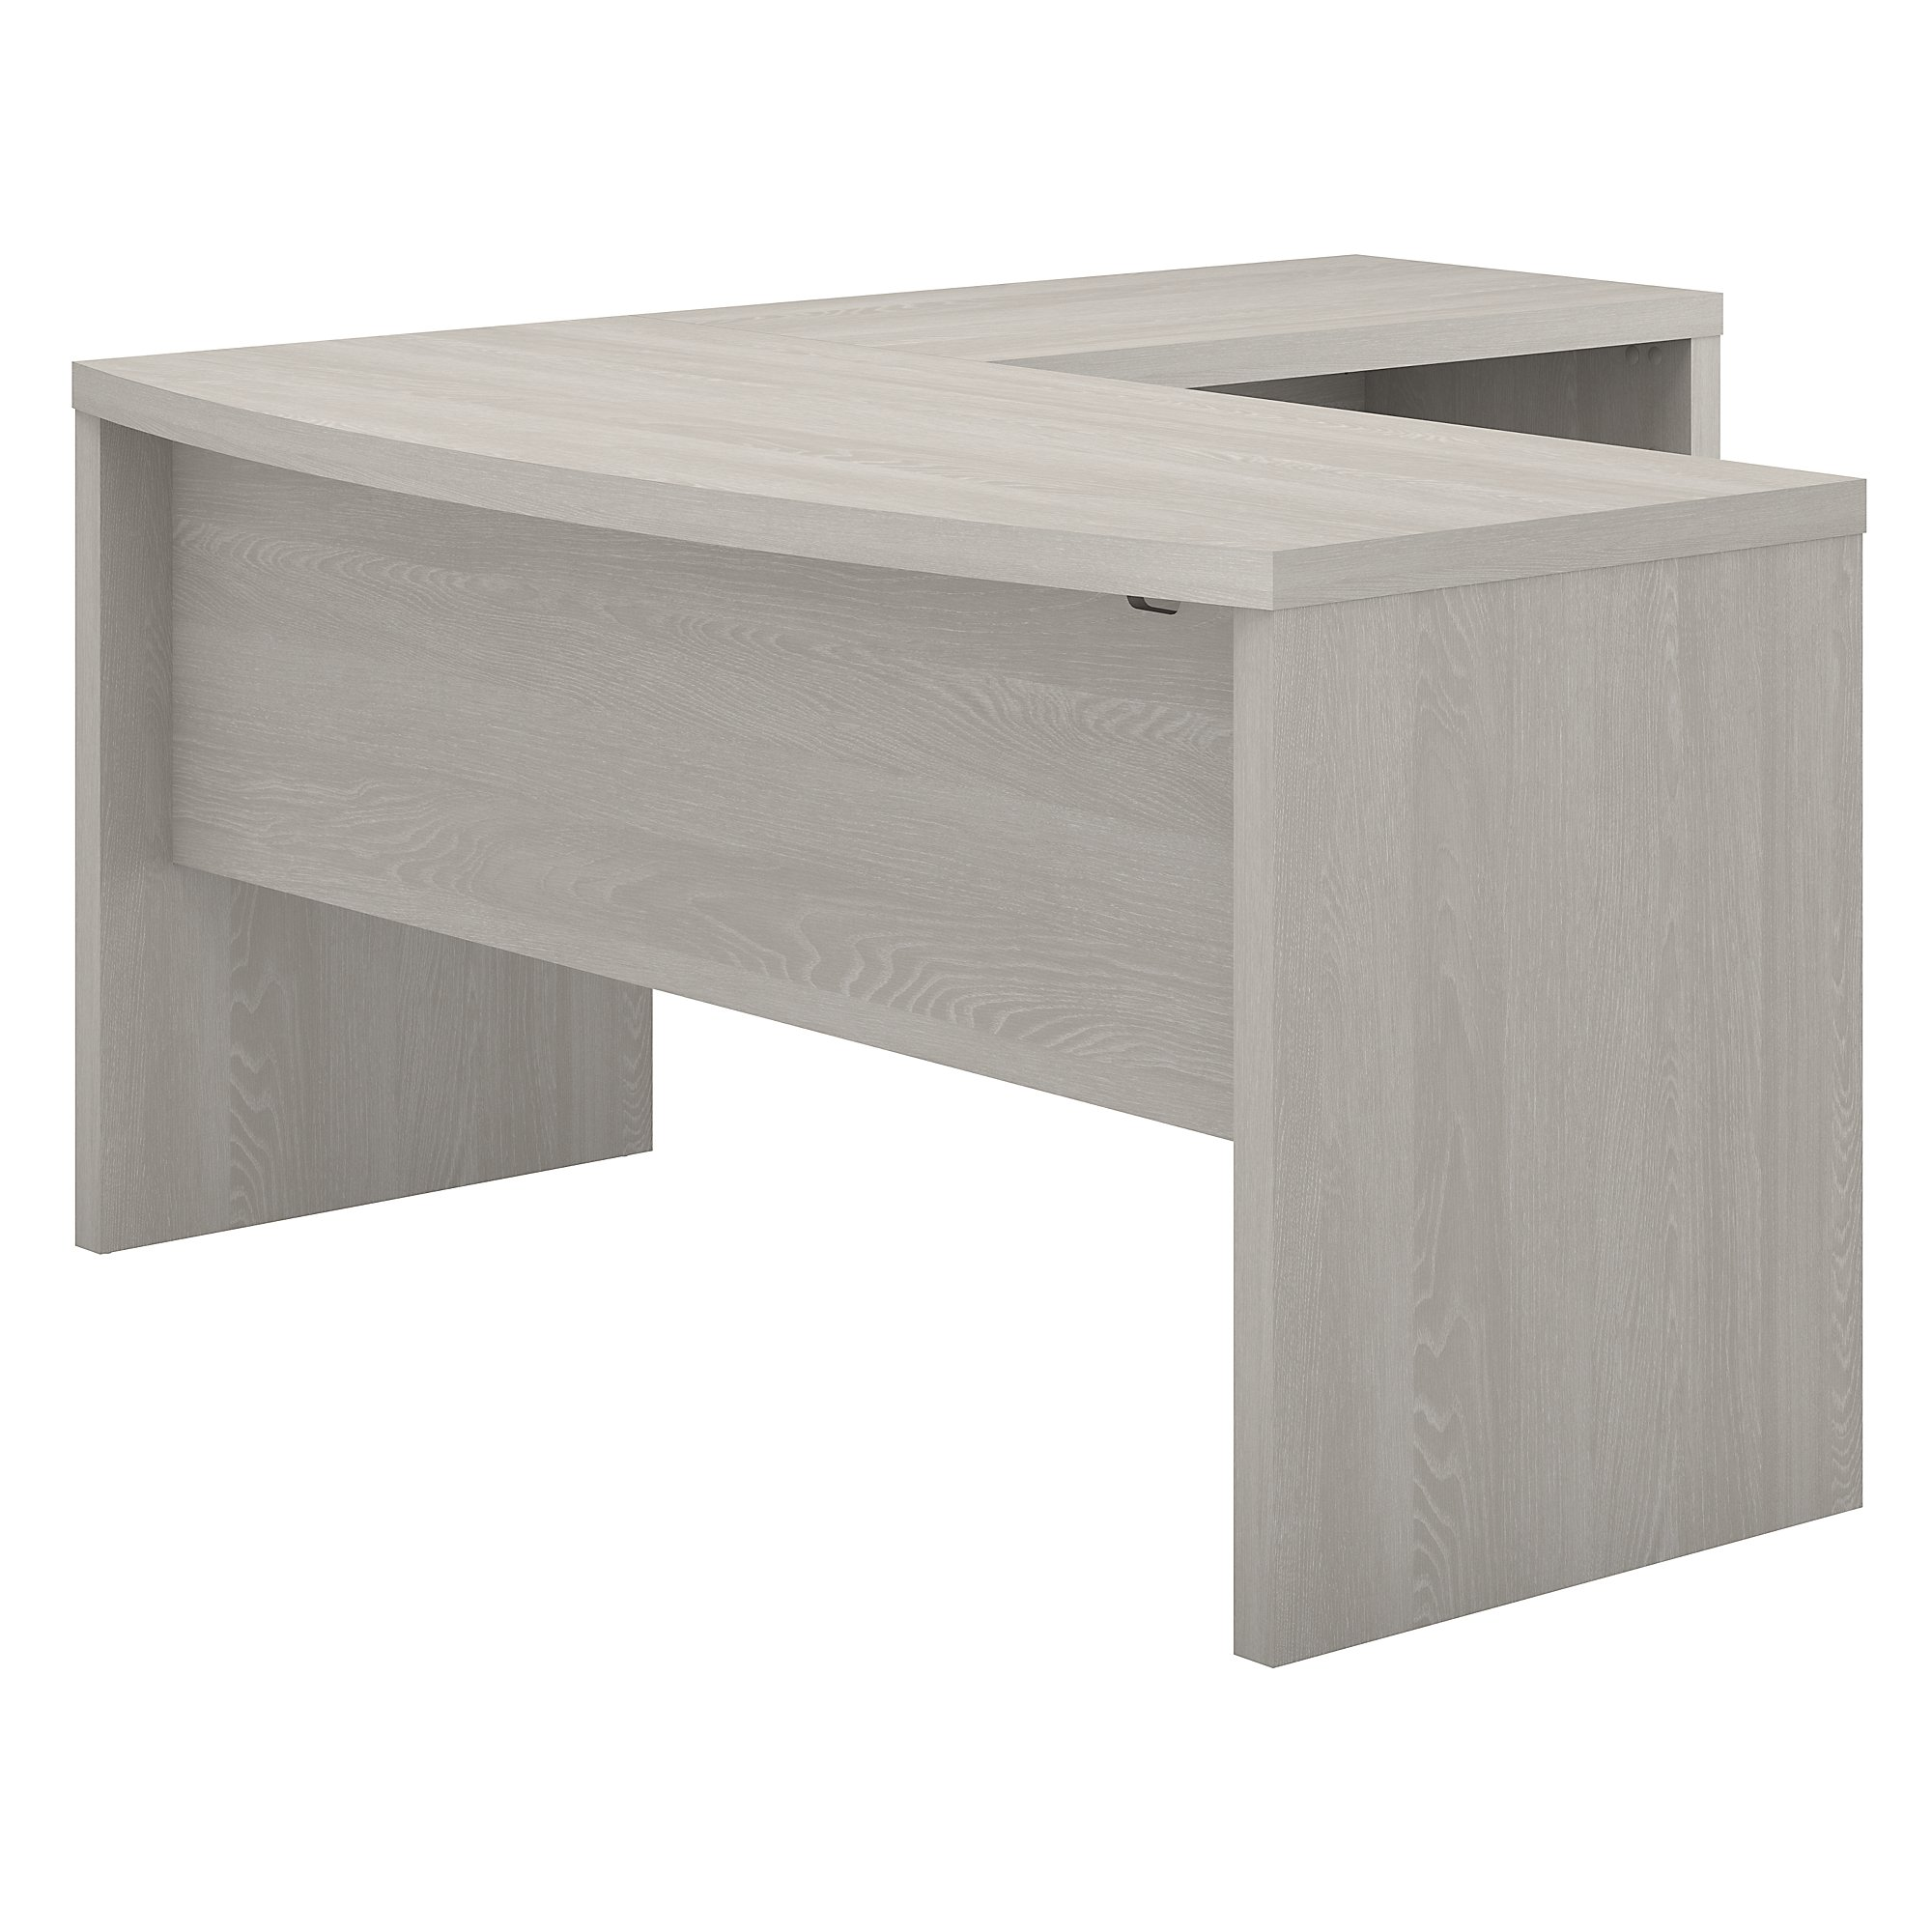 echo bow front l desk in gray sand